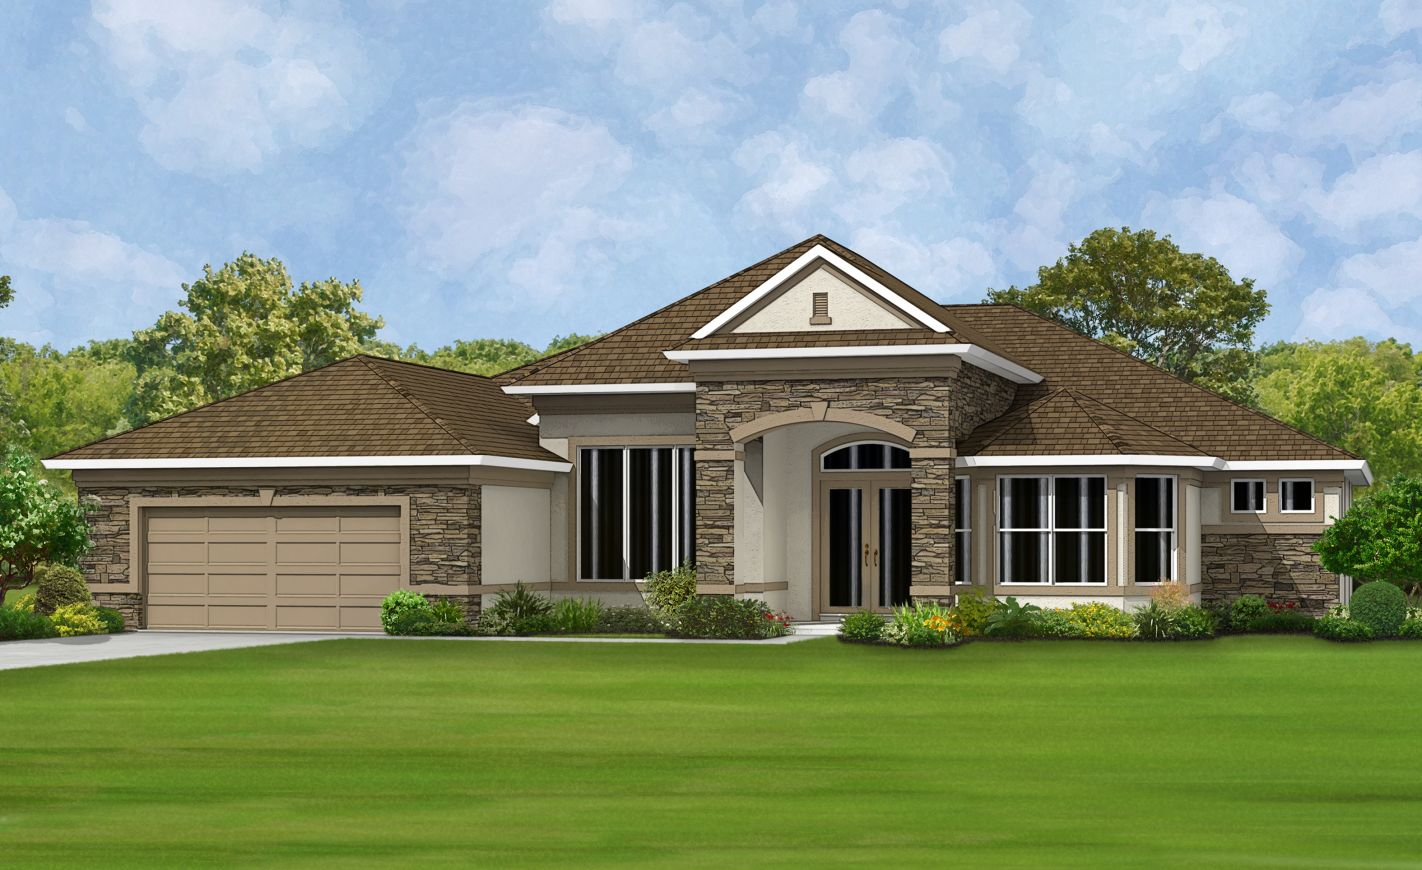 New homes in breakaway trails ormond beach ici homes for Ici floor plans